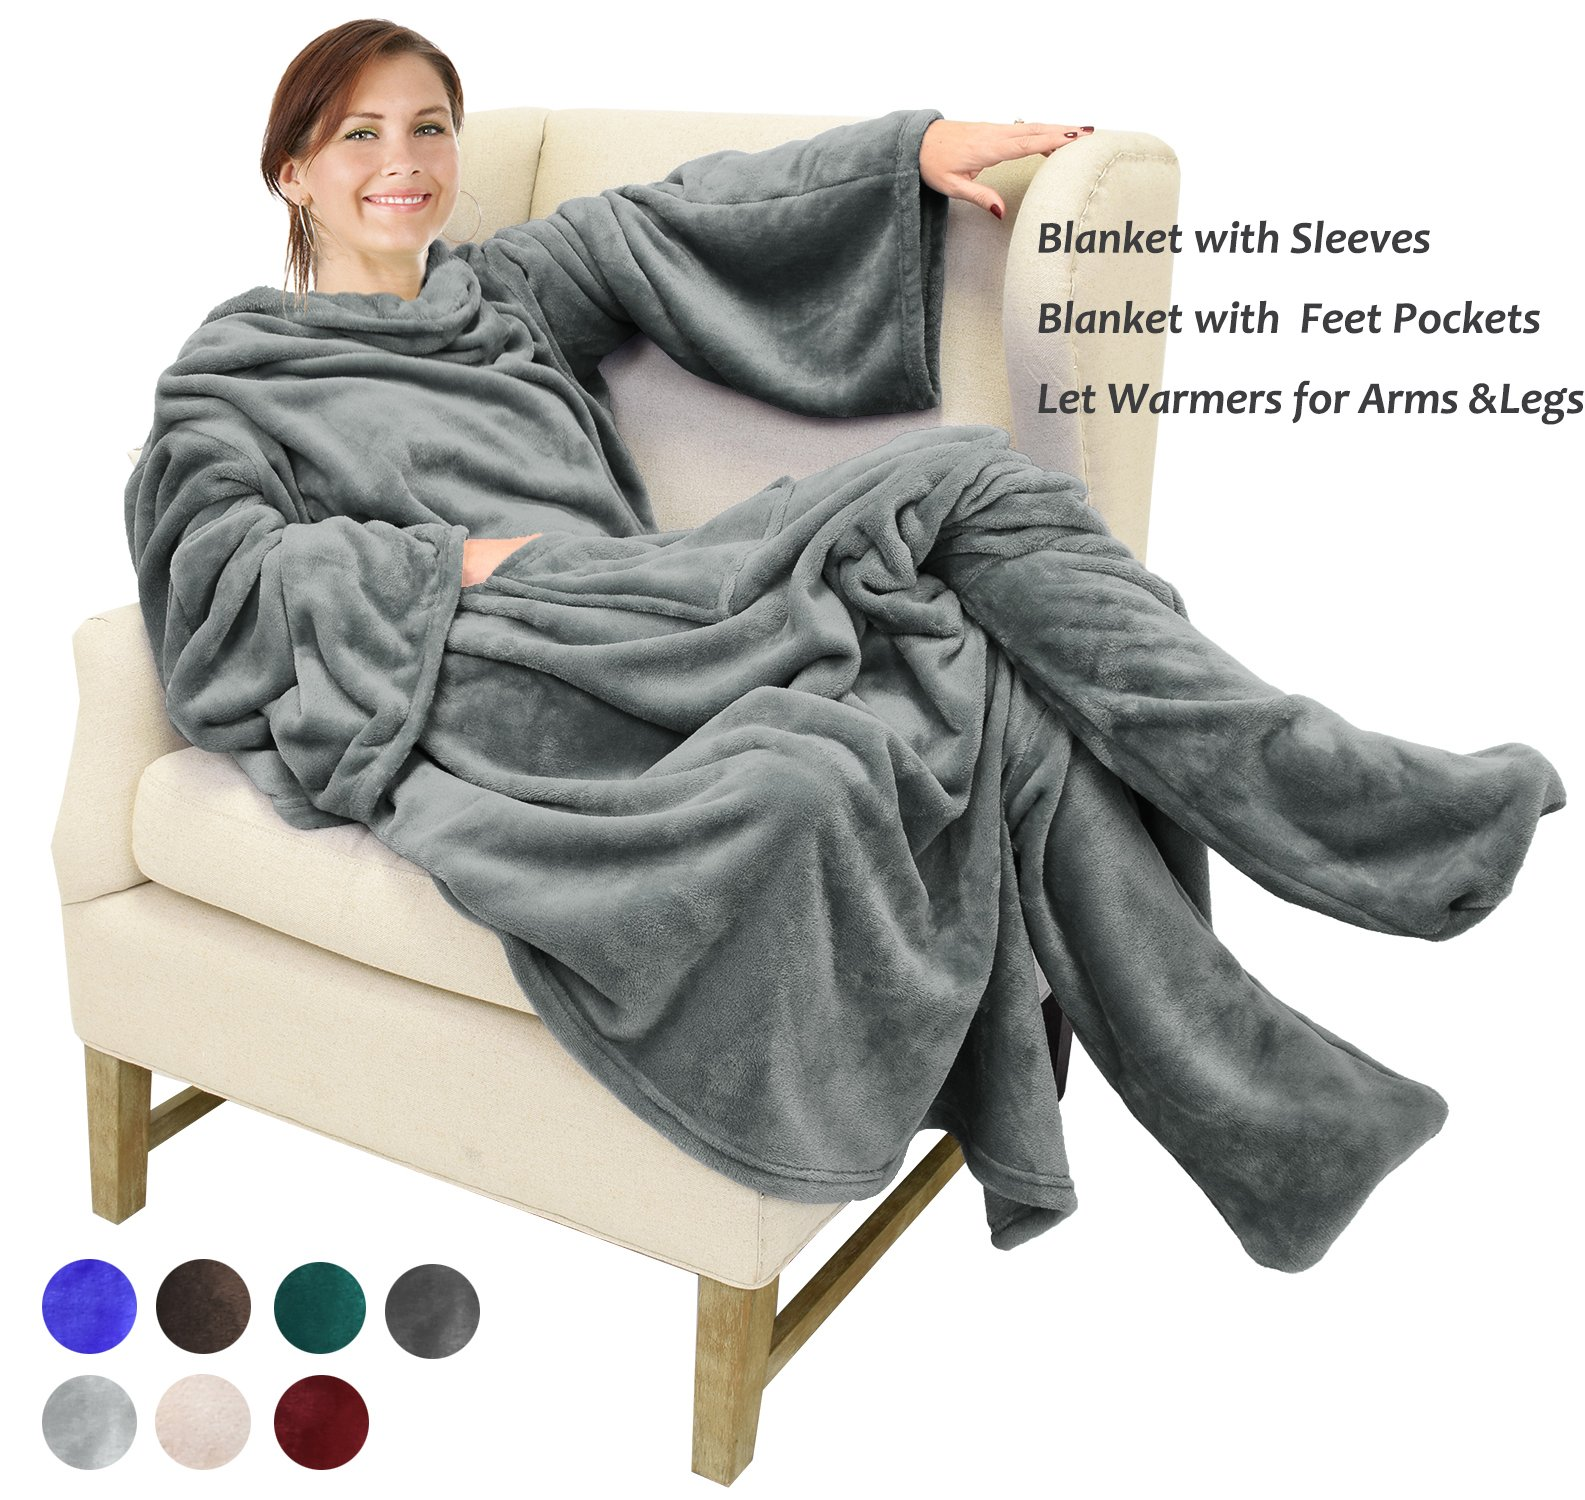 da3256c12 Get Quotations · Catalonia Wearable Fleece Blanket with Sleeves   Foot  Pockets for Adult Women Men